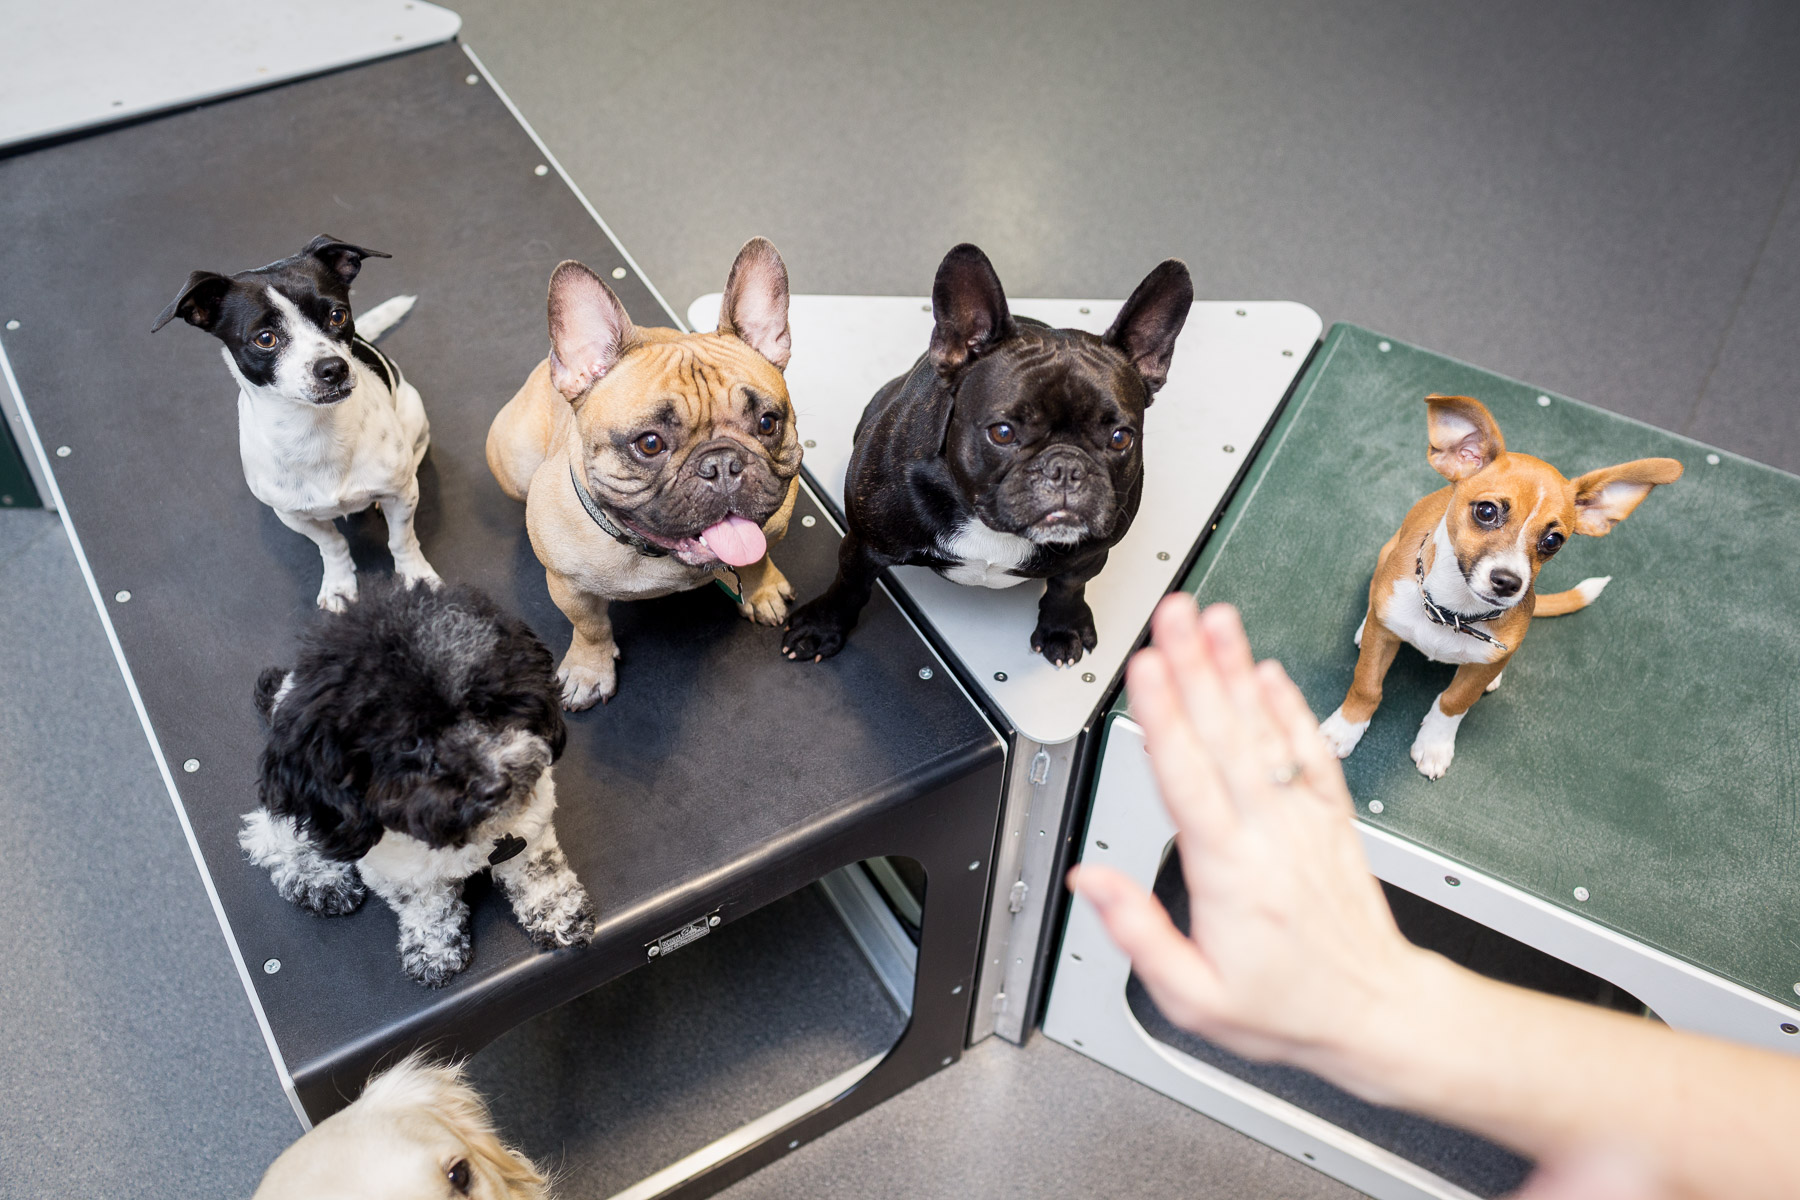 """Dog trainer commanding the dogs to """"Stay"""" for the shot."""